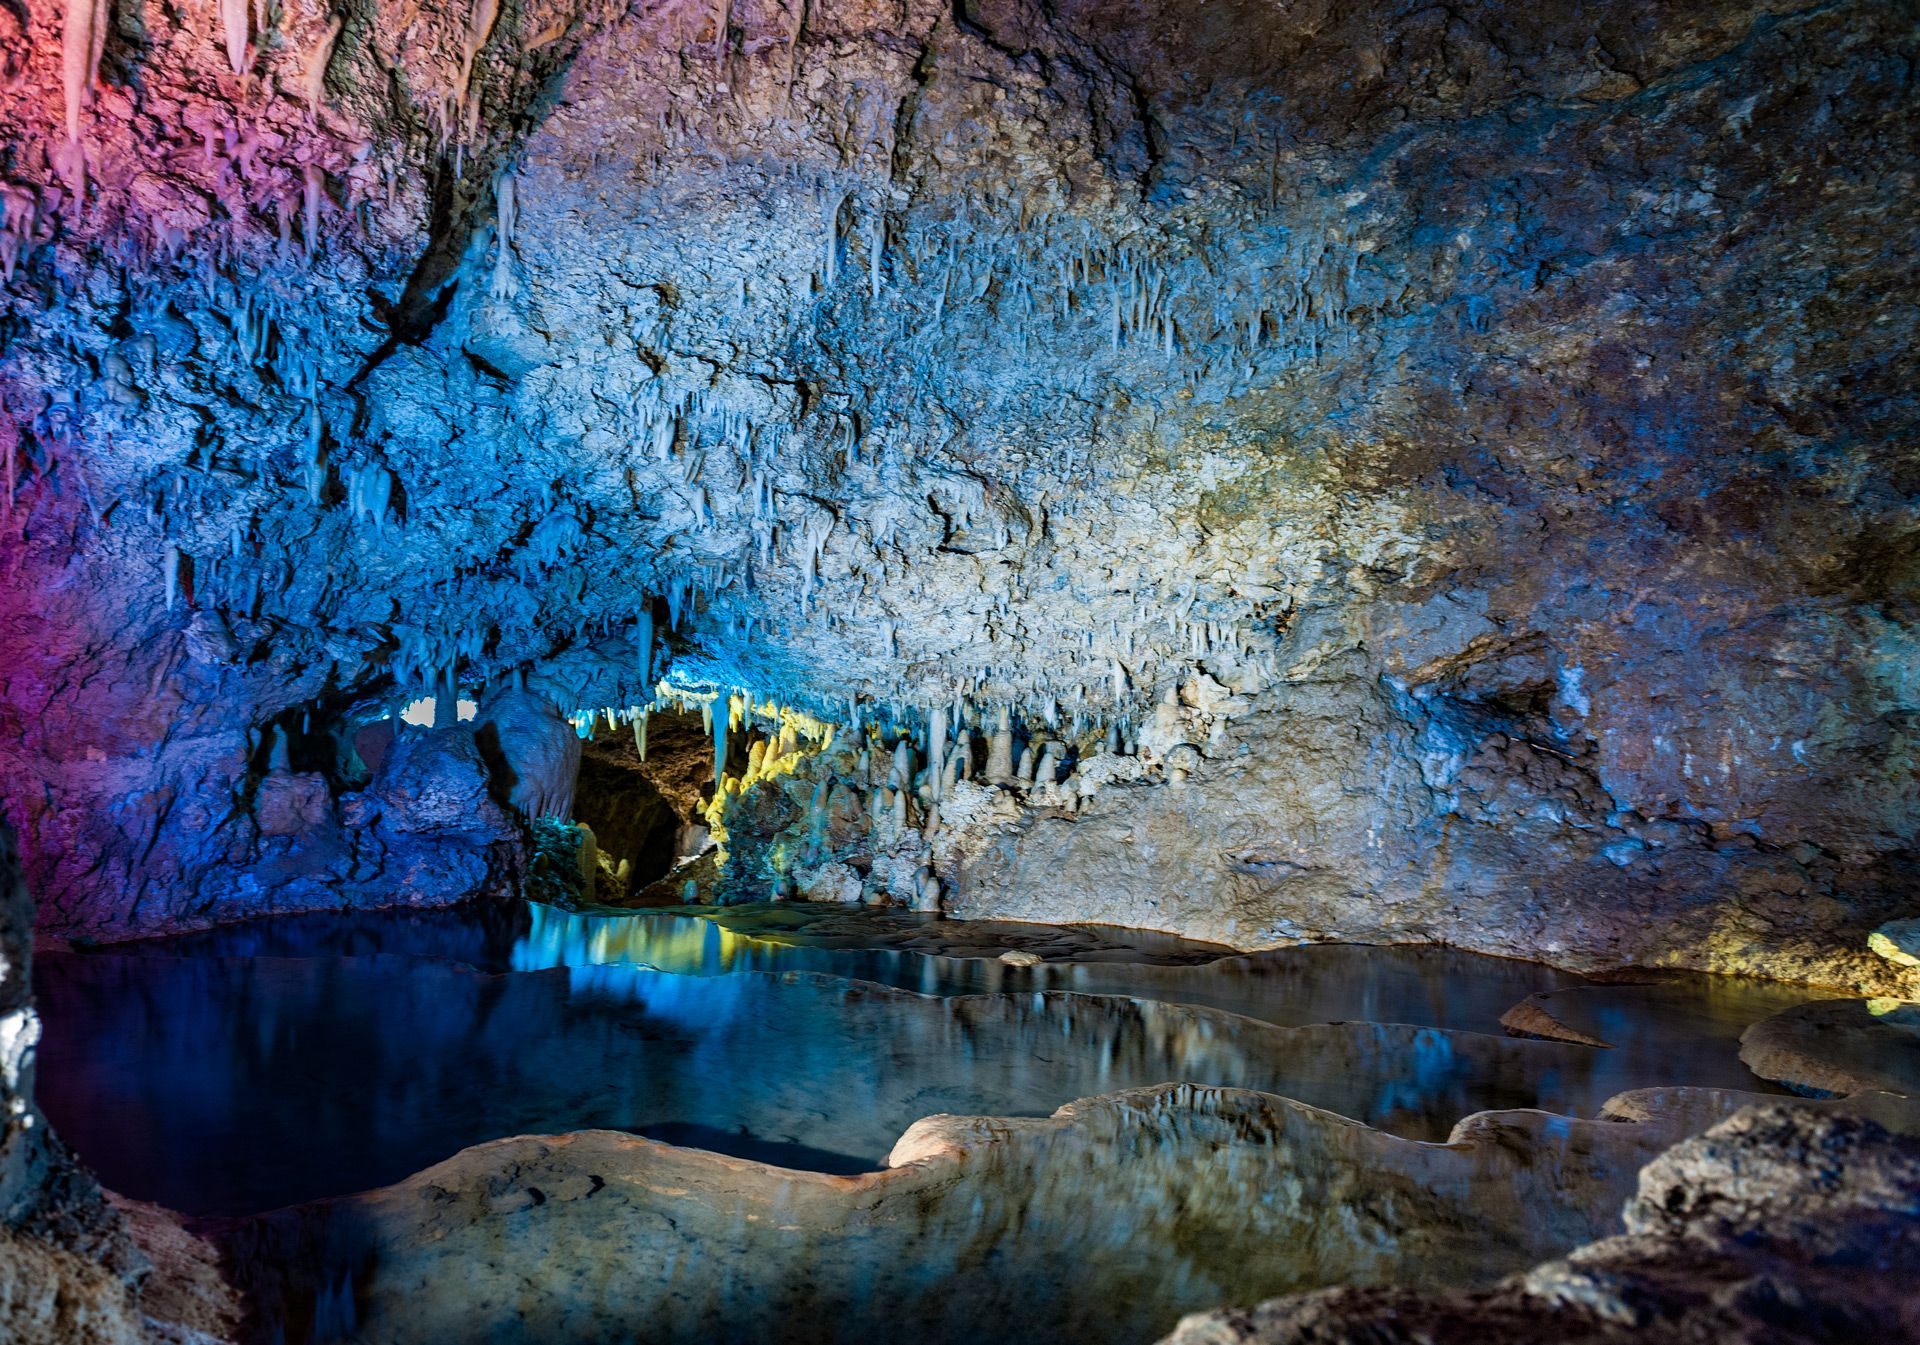 Harrison's Cave Barbados: A Magical Underground Adventure | Sandals